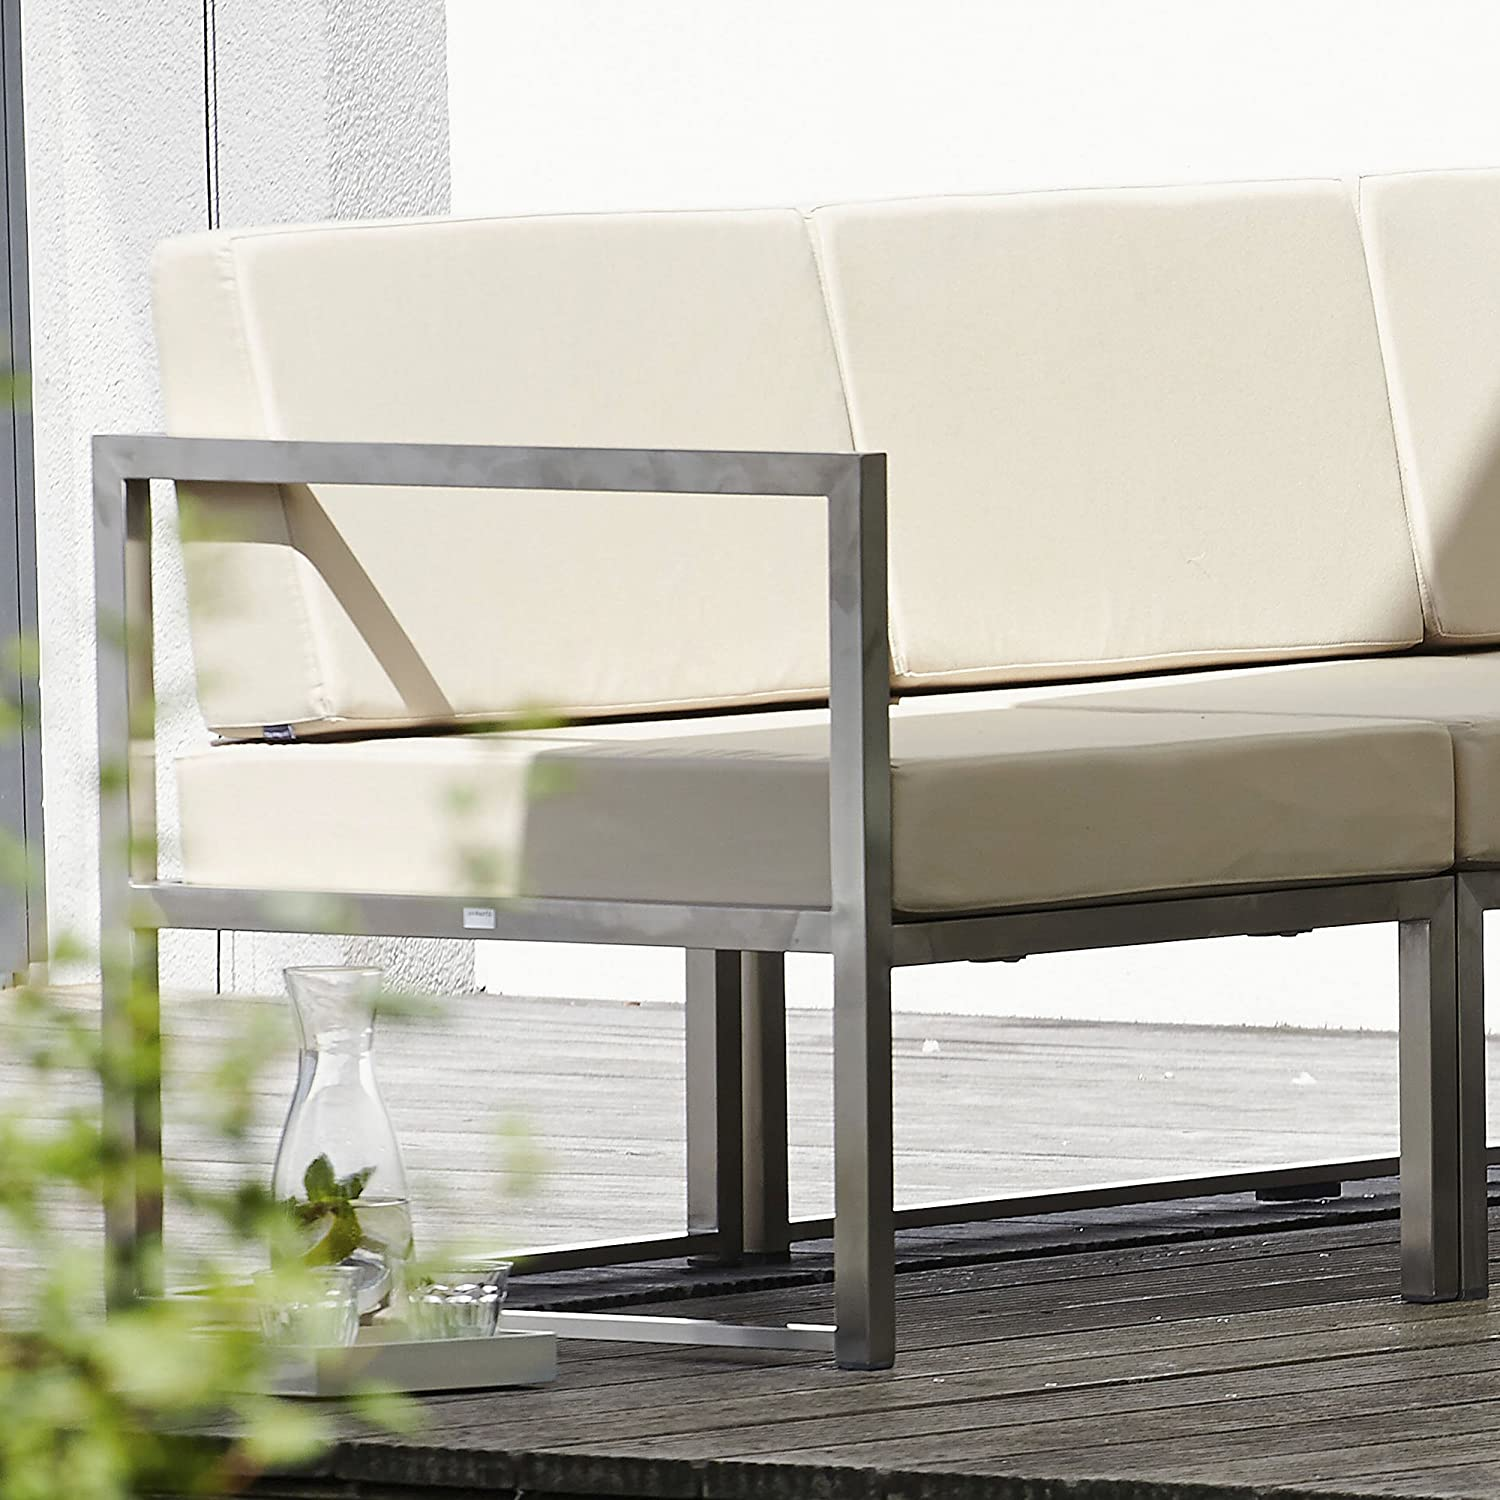 Lux Lounge Eckelement taupe 67 x 67 cm, h 62 cm